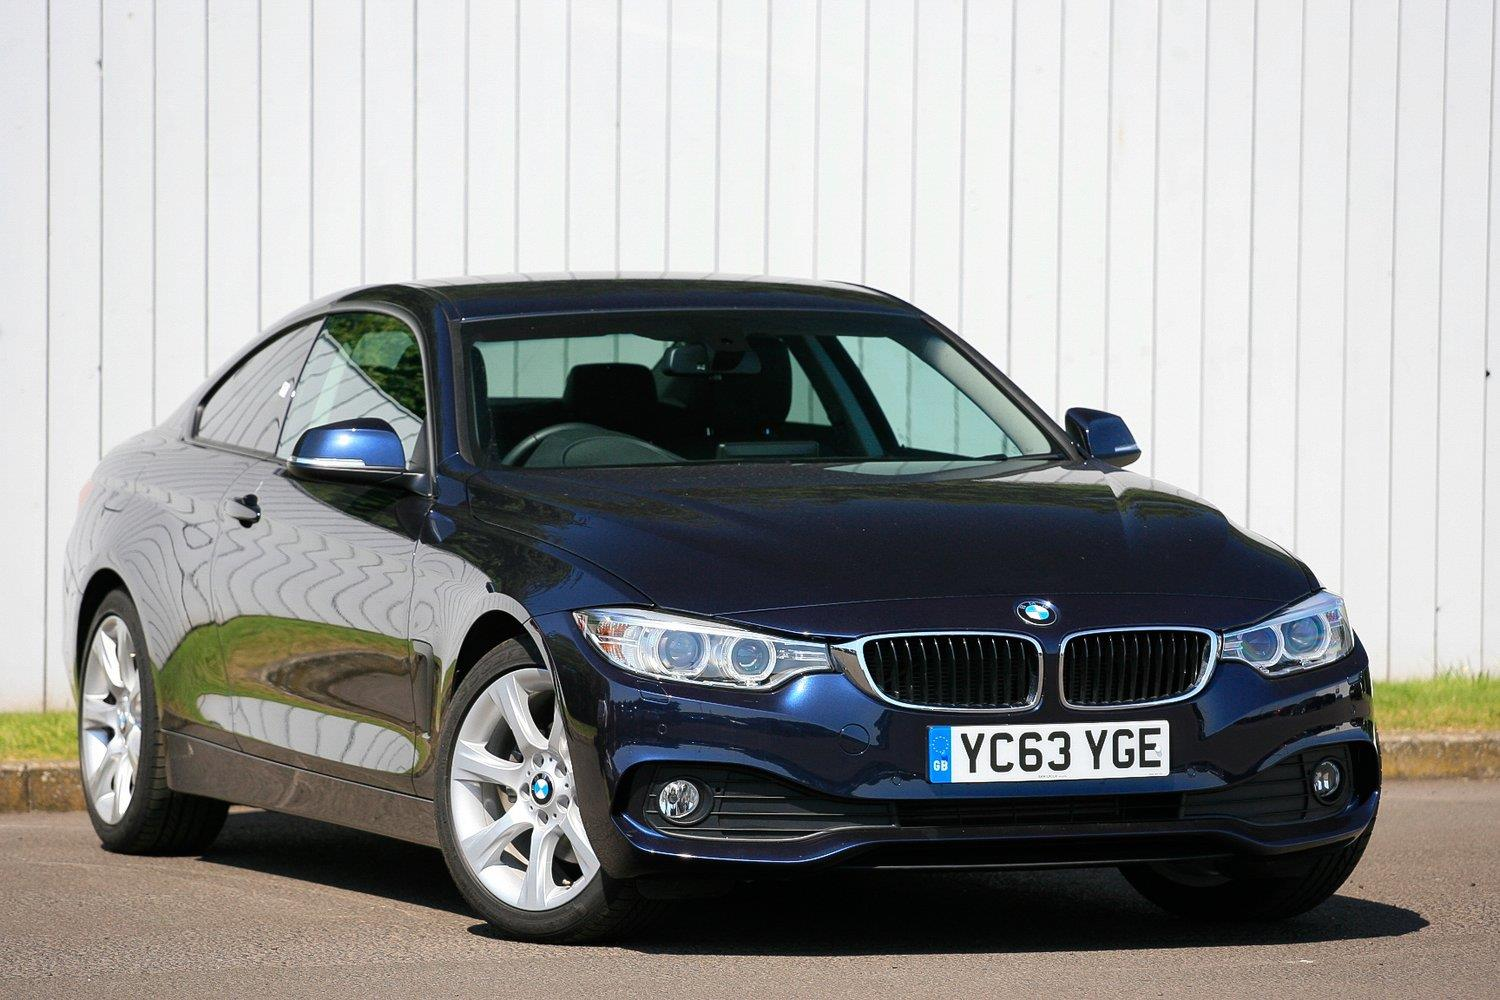 BMW 4 Series Coupé YC63YGE - Image 8